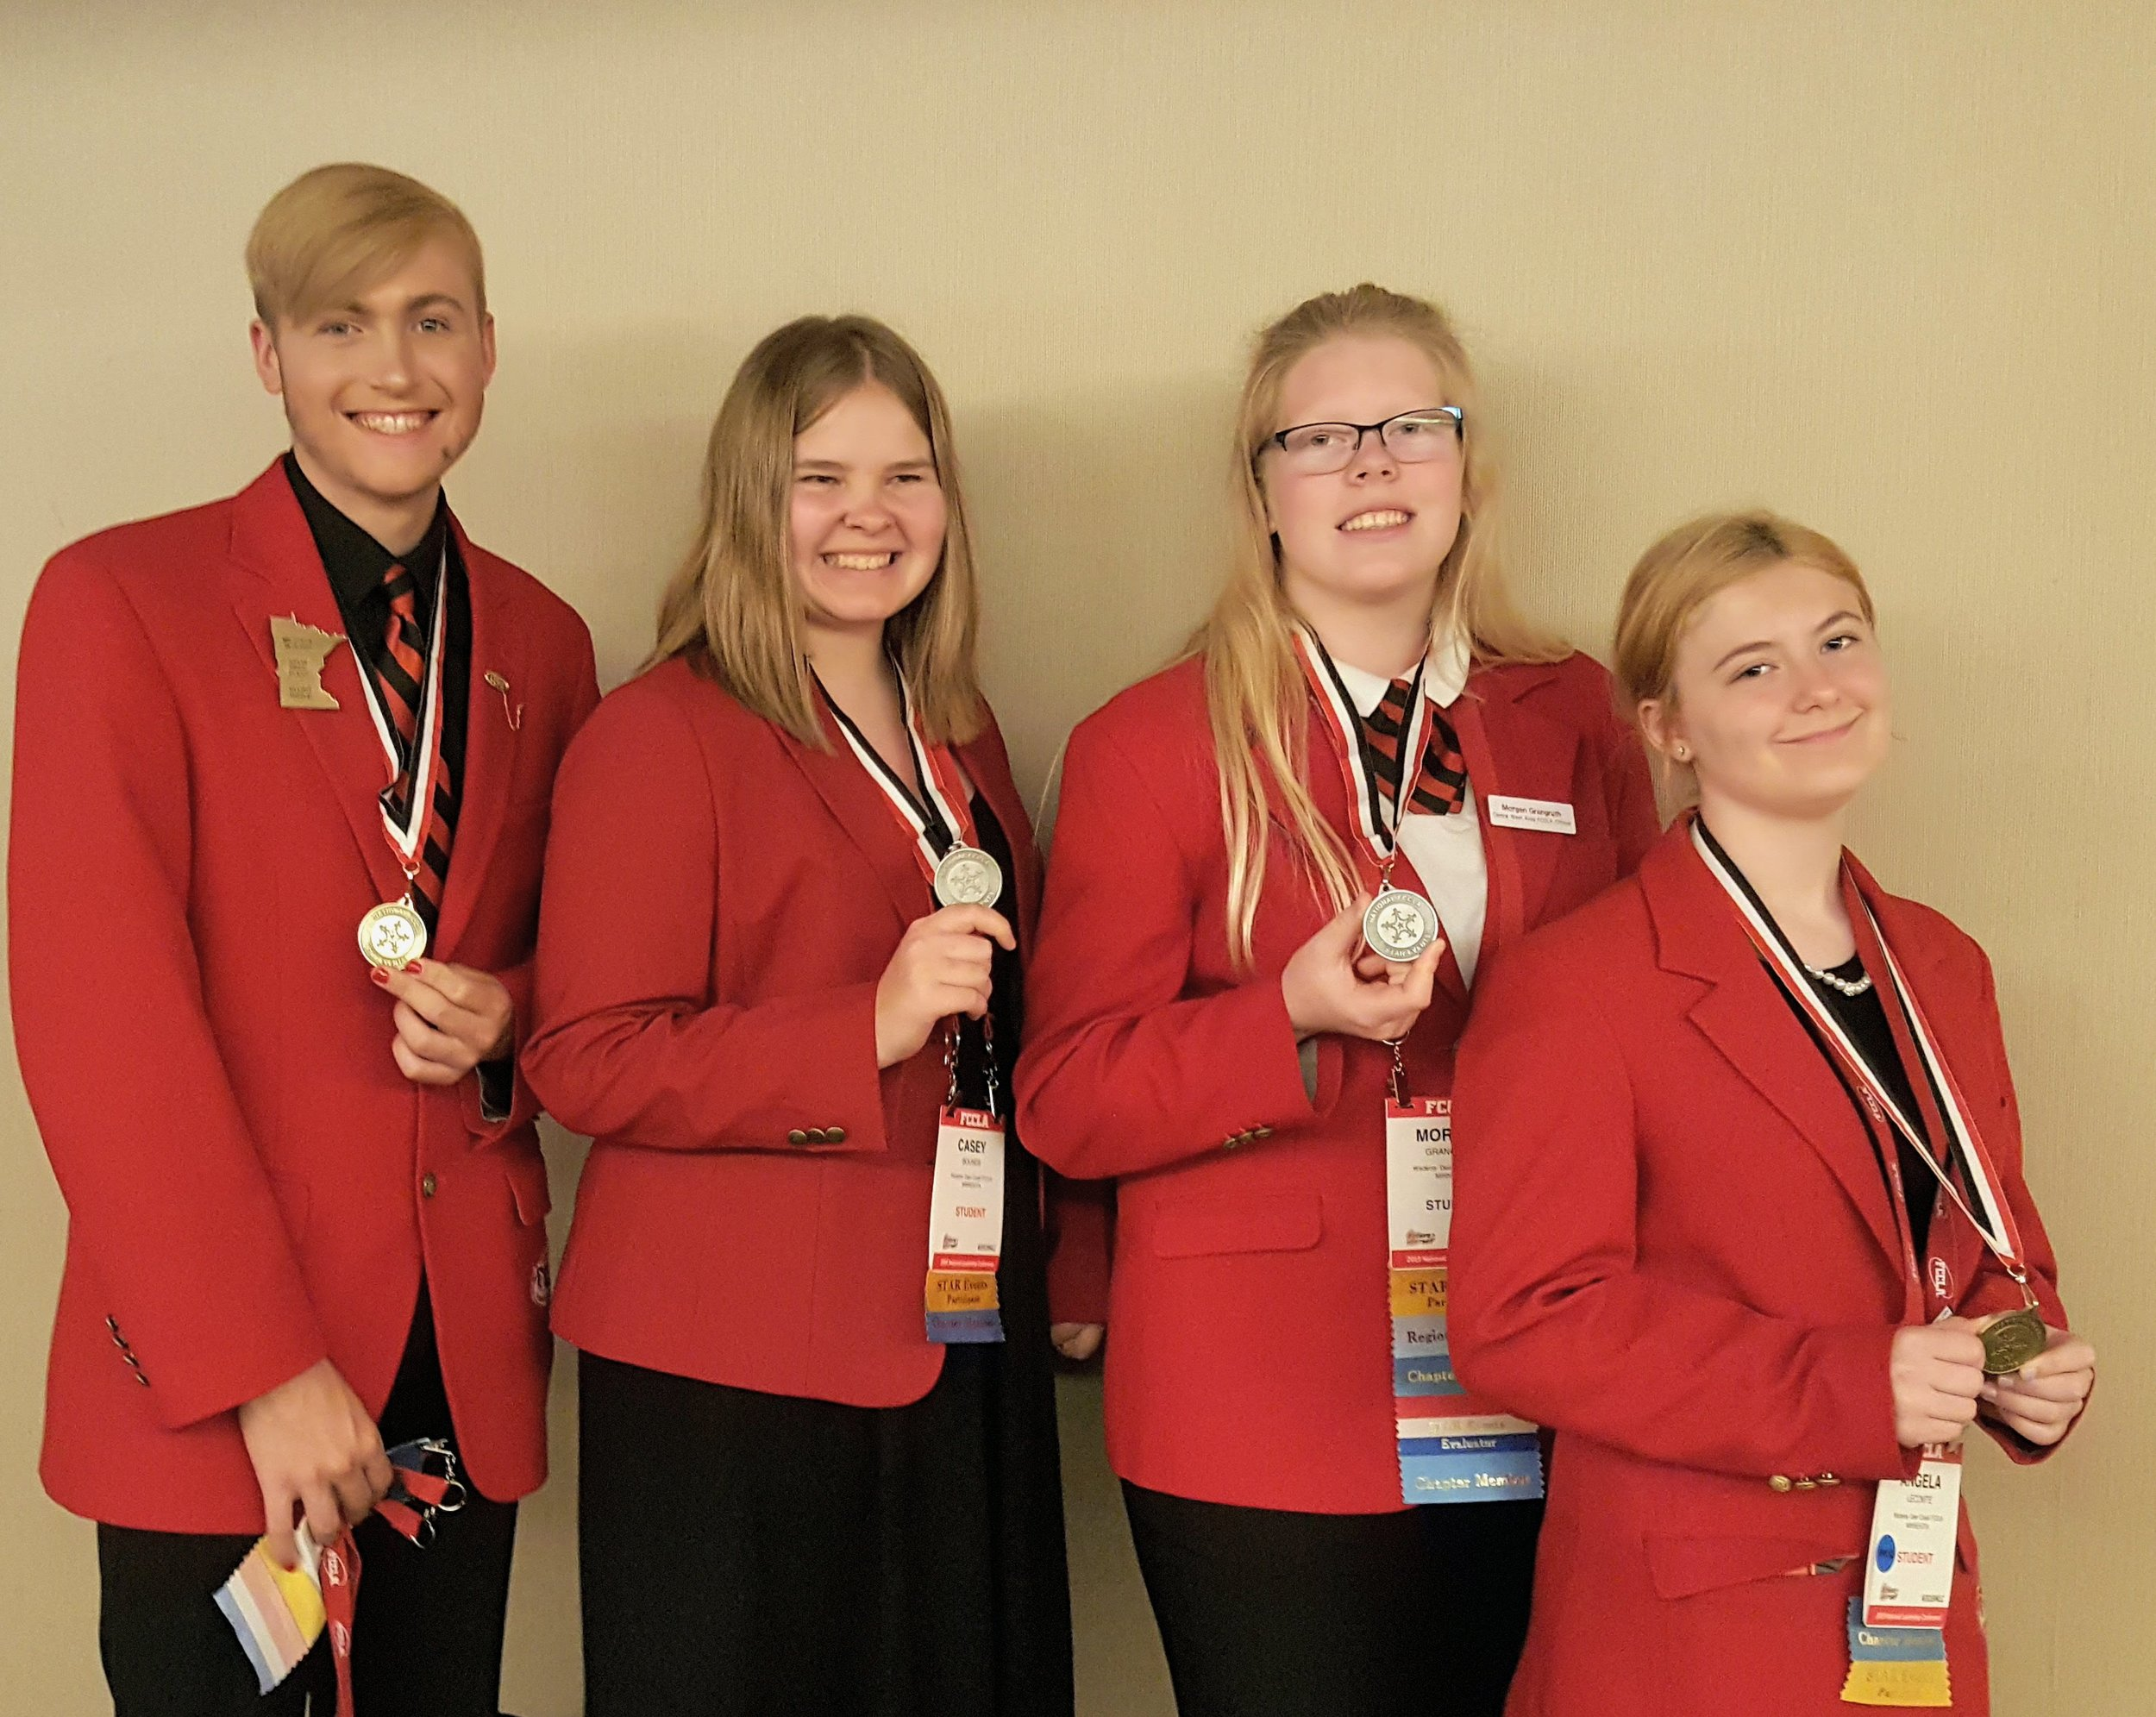 From left: Wadena-Deer Creek FCCLA members Elliot Doyle, Casey Bounds, Morgan Grangruth and Angela LeComte display their STAR events medals they earned at the national conference in Anaheim, Calif. Photo by Cindi Koll, FCCLA co-advisor.